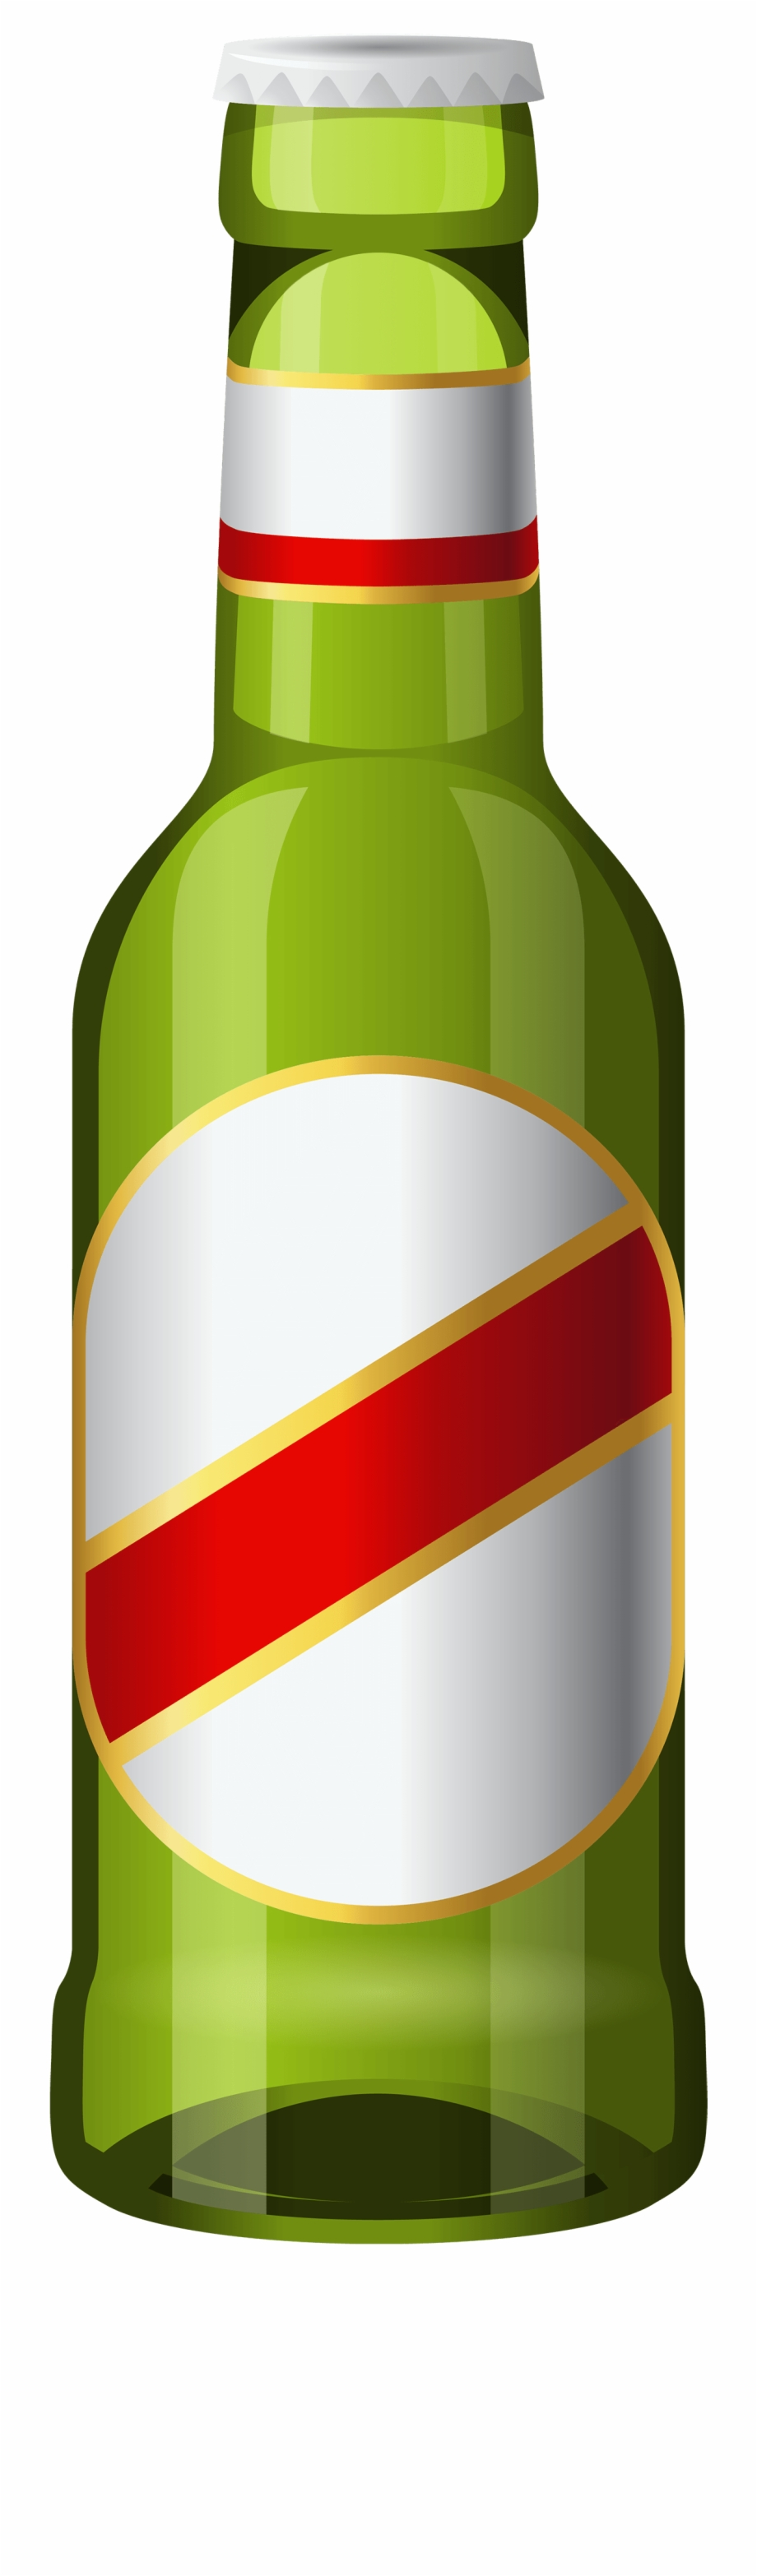 Cartoon Beer Bottle Clipart - Beer Bottle Clipart Png Free ... vector free library